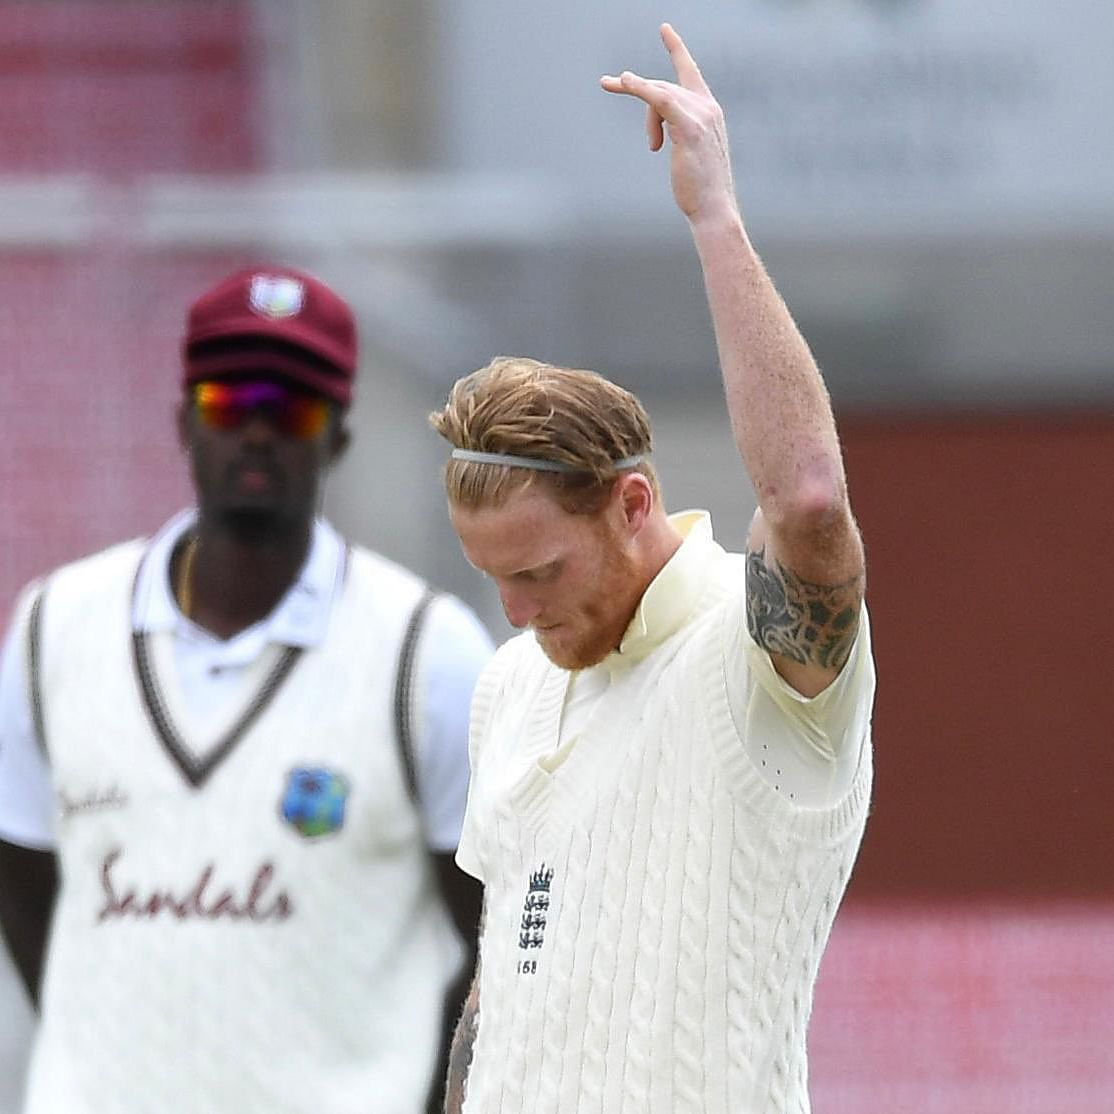 Ben Stokes' father Ged passes away: Twitterati send their 'thoughts and prayers' to England cricketer